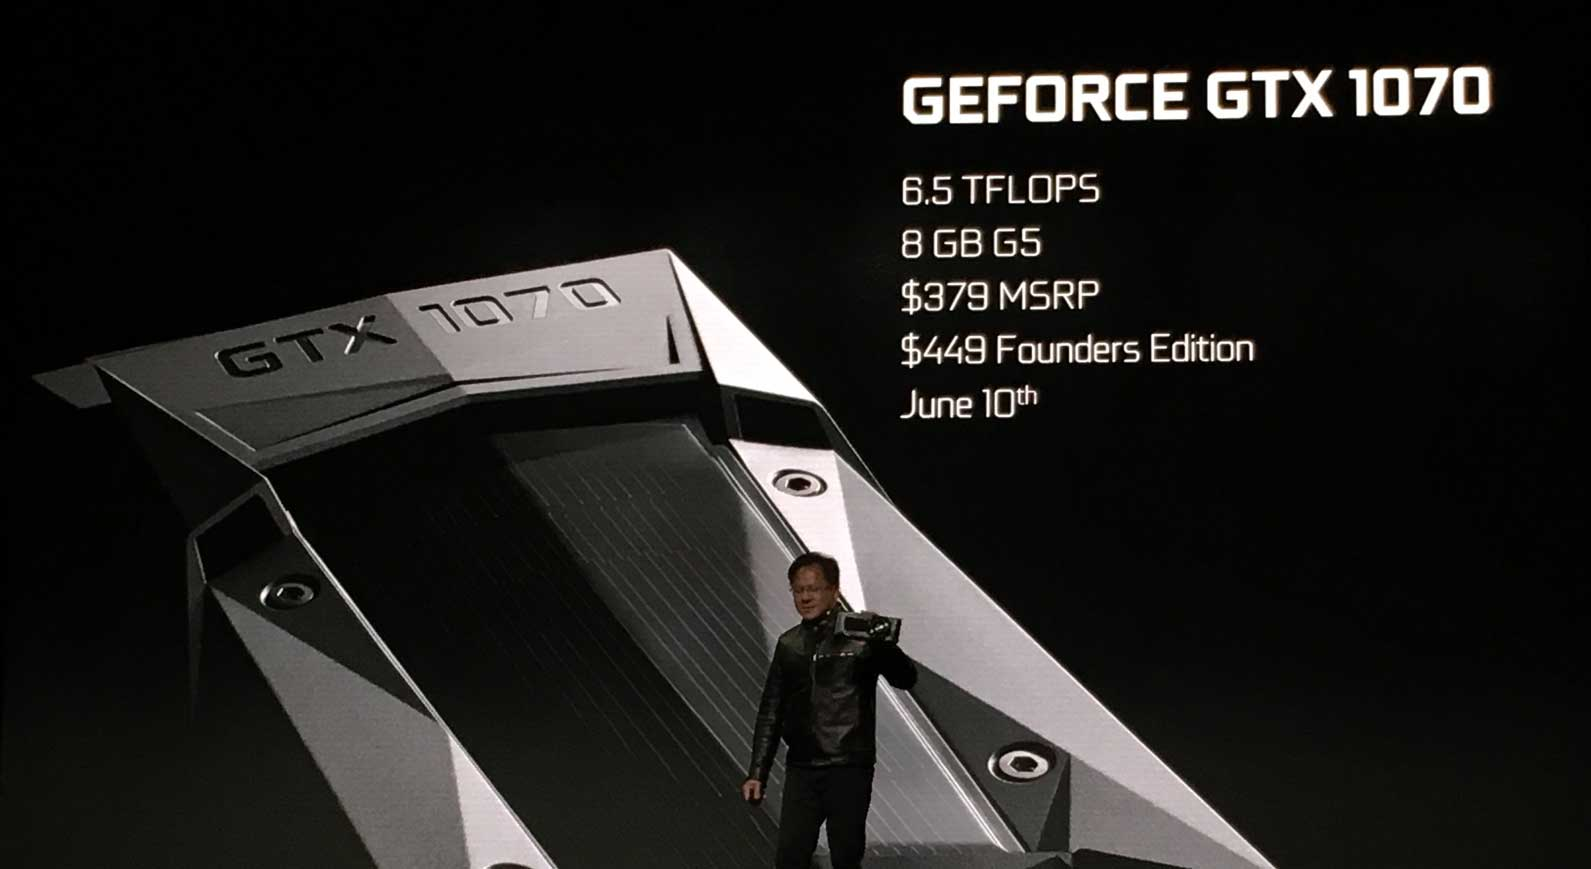 NVIDIA GTX 1070 is Faster Than Titan X for $379, Coming June 10th